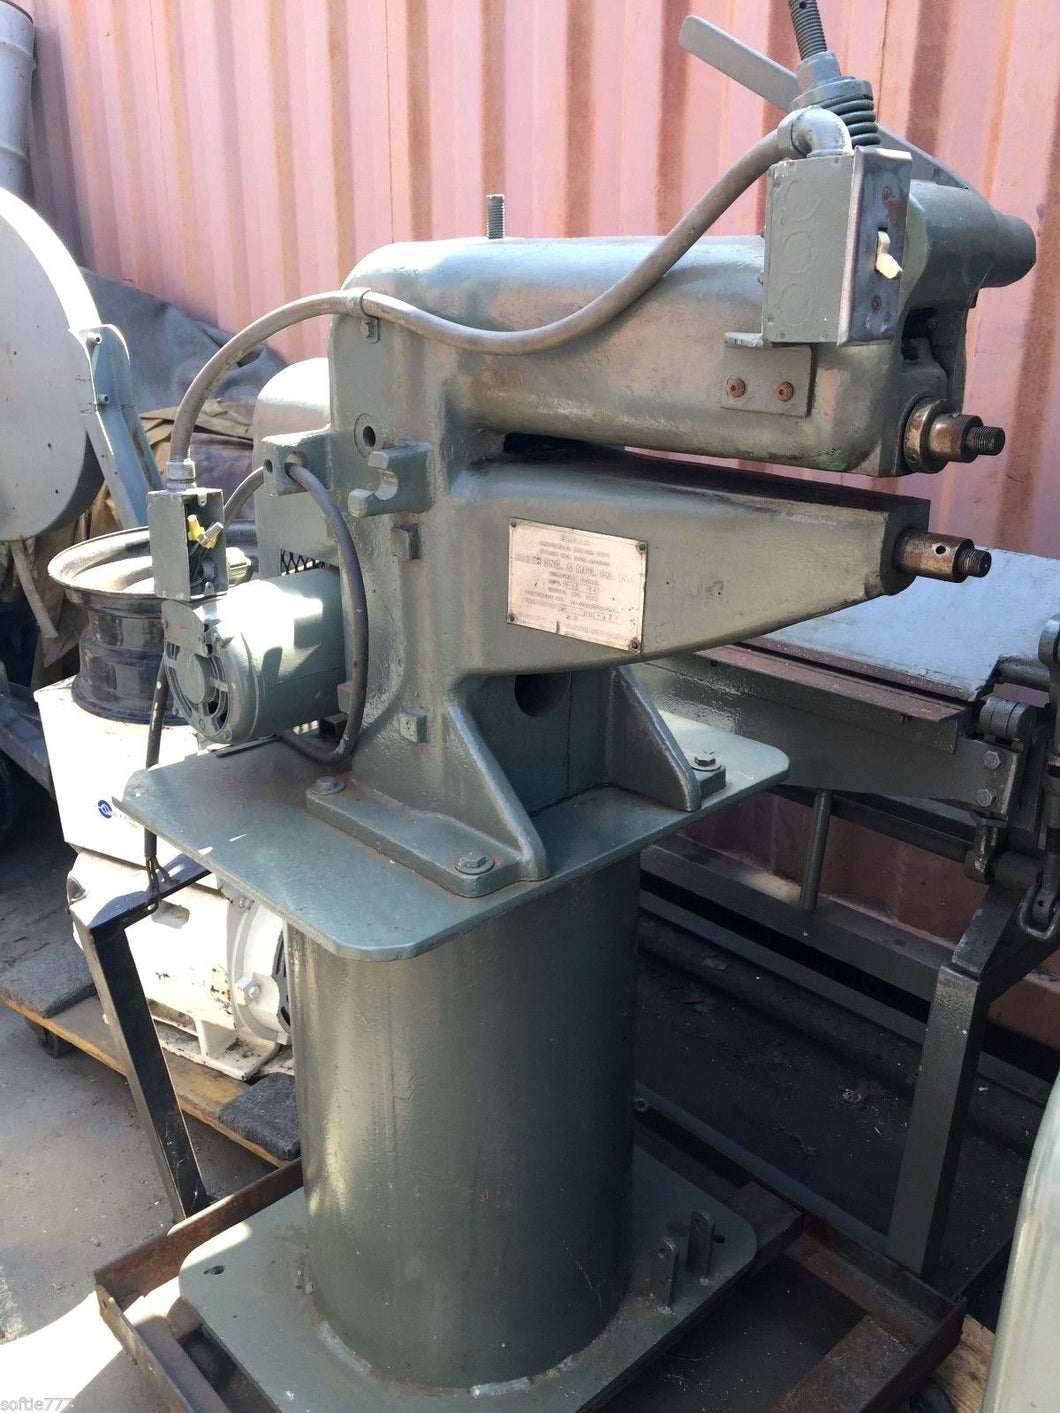 BARTH ENG & MFG CO. POWER BEAD ROLLER 16